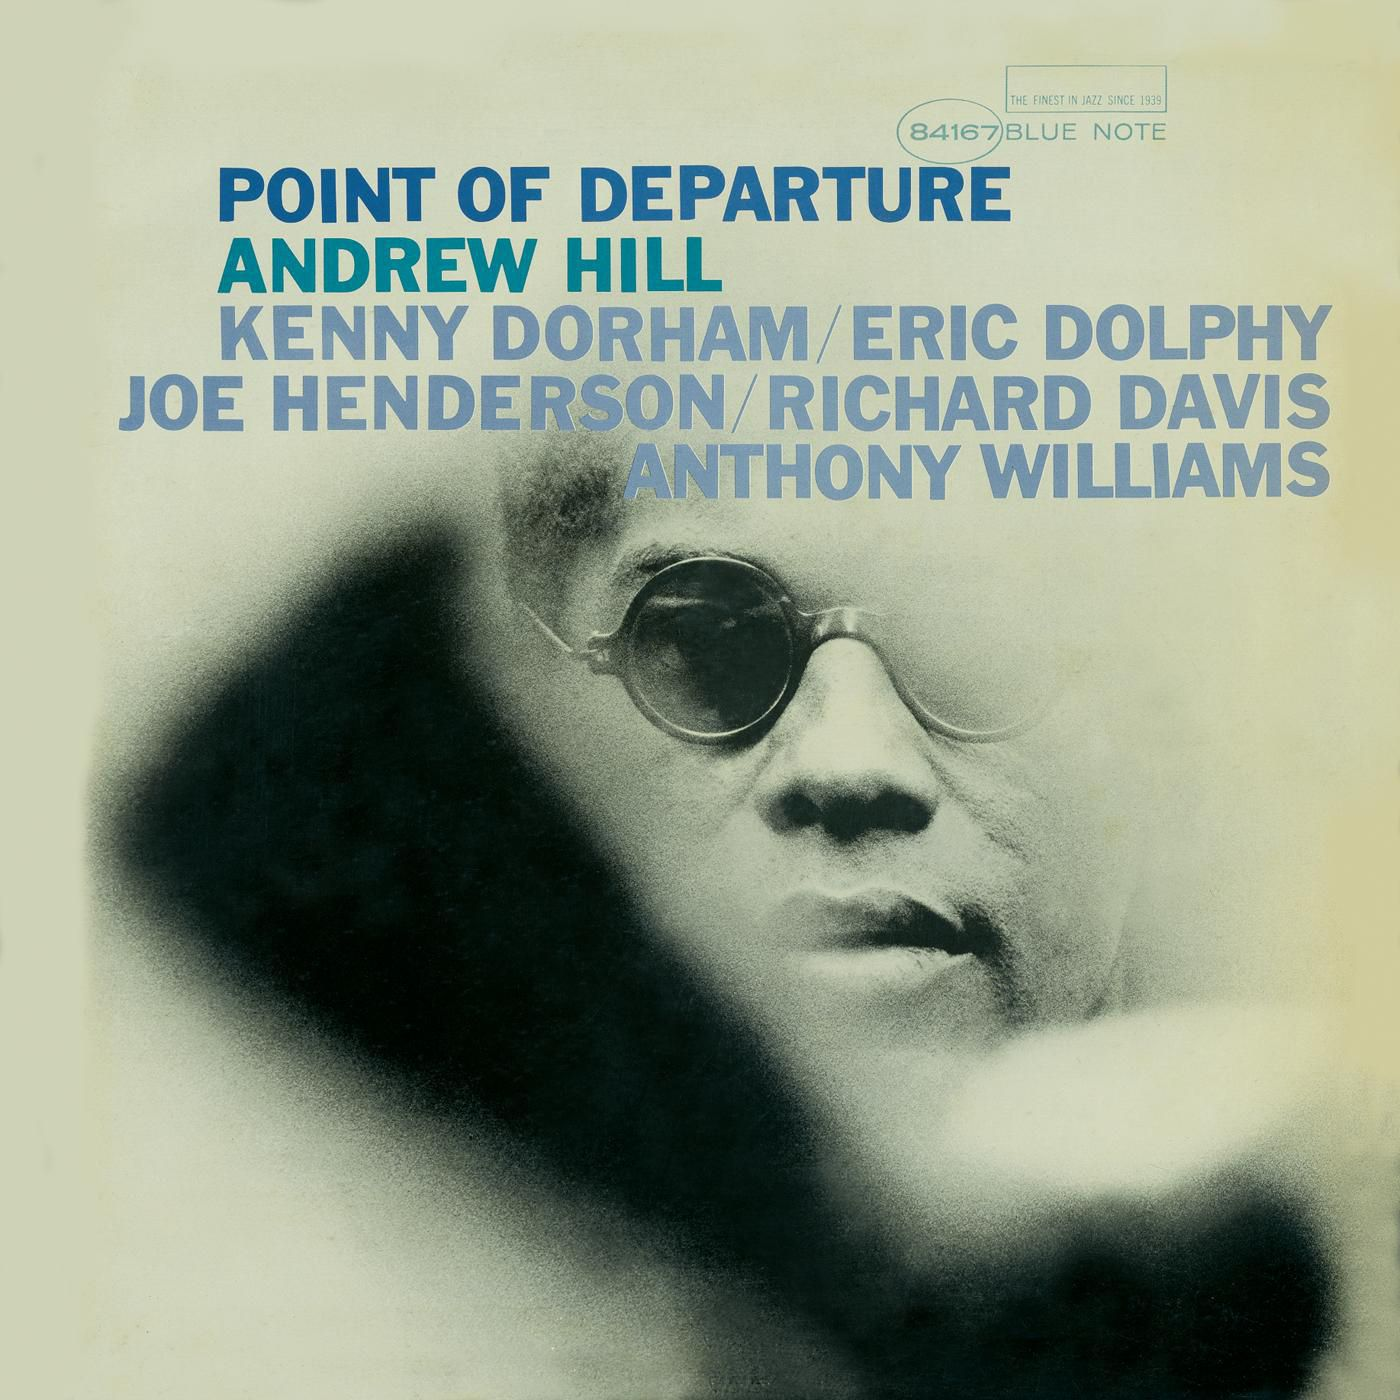 50 Years Ago Today On March 21 1964 The Elliptical Genius Pianist Composer Andrew Hill Took Refuge In A New Monastery And Crea Eric Dolphy Album Covers Jazz